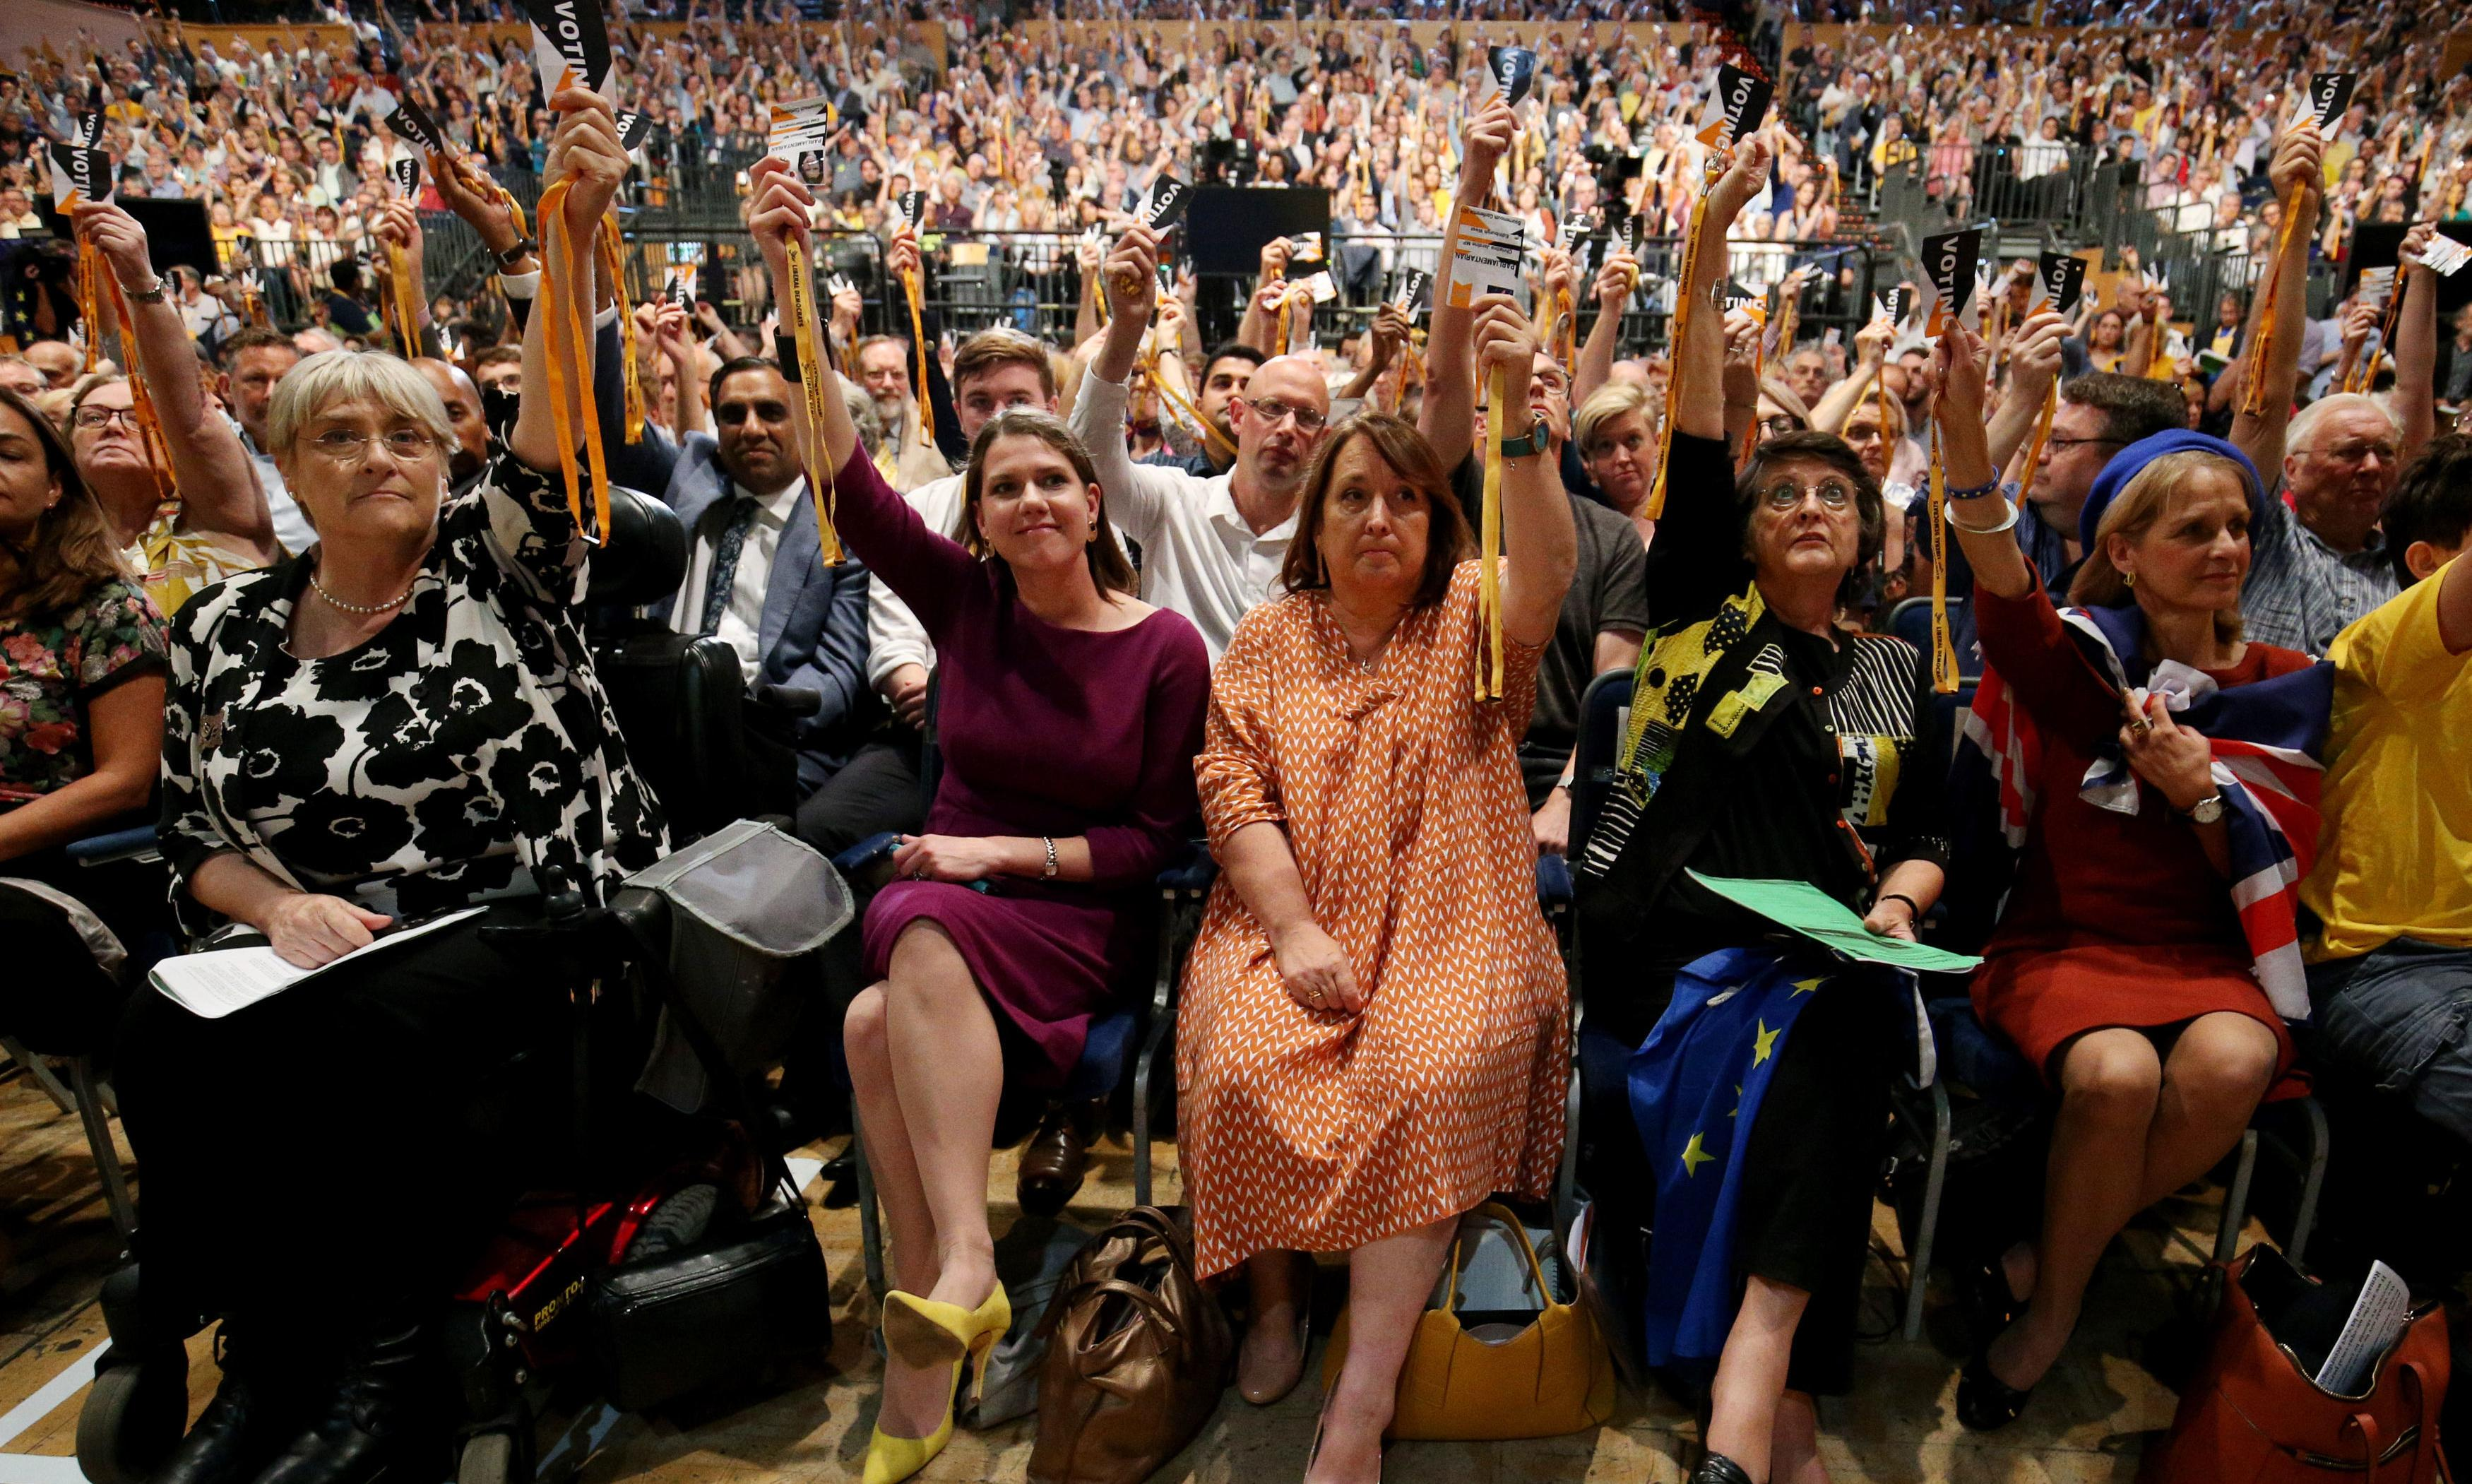 Today at the Liberal Democrat conference